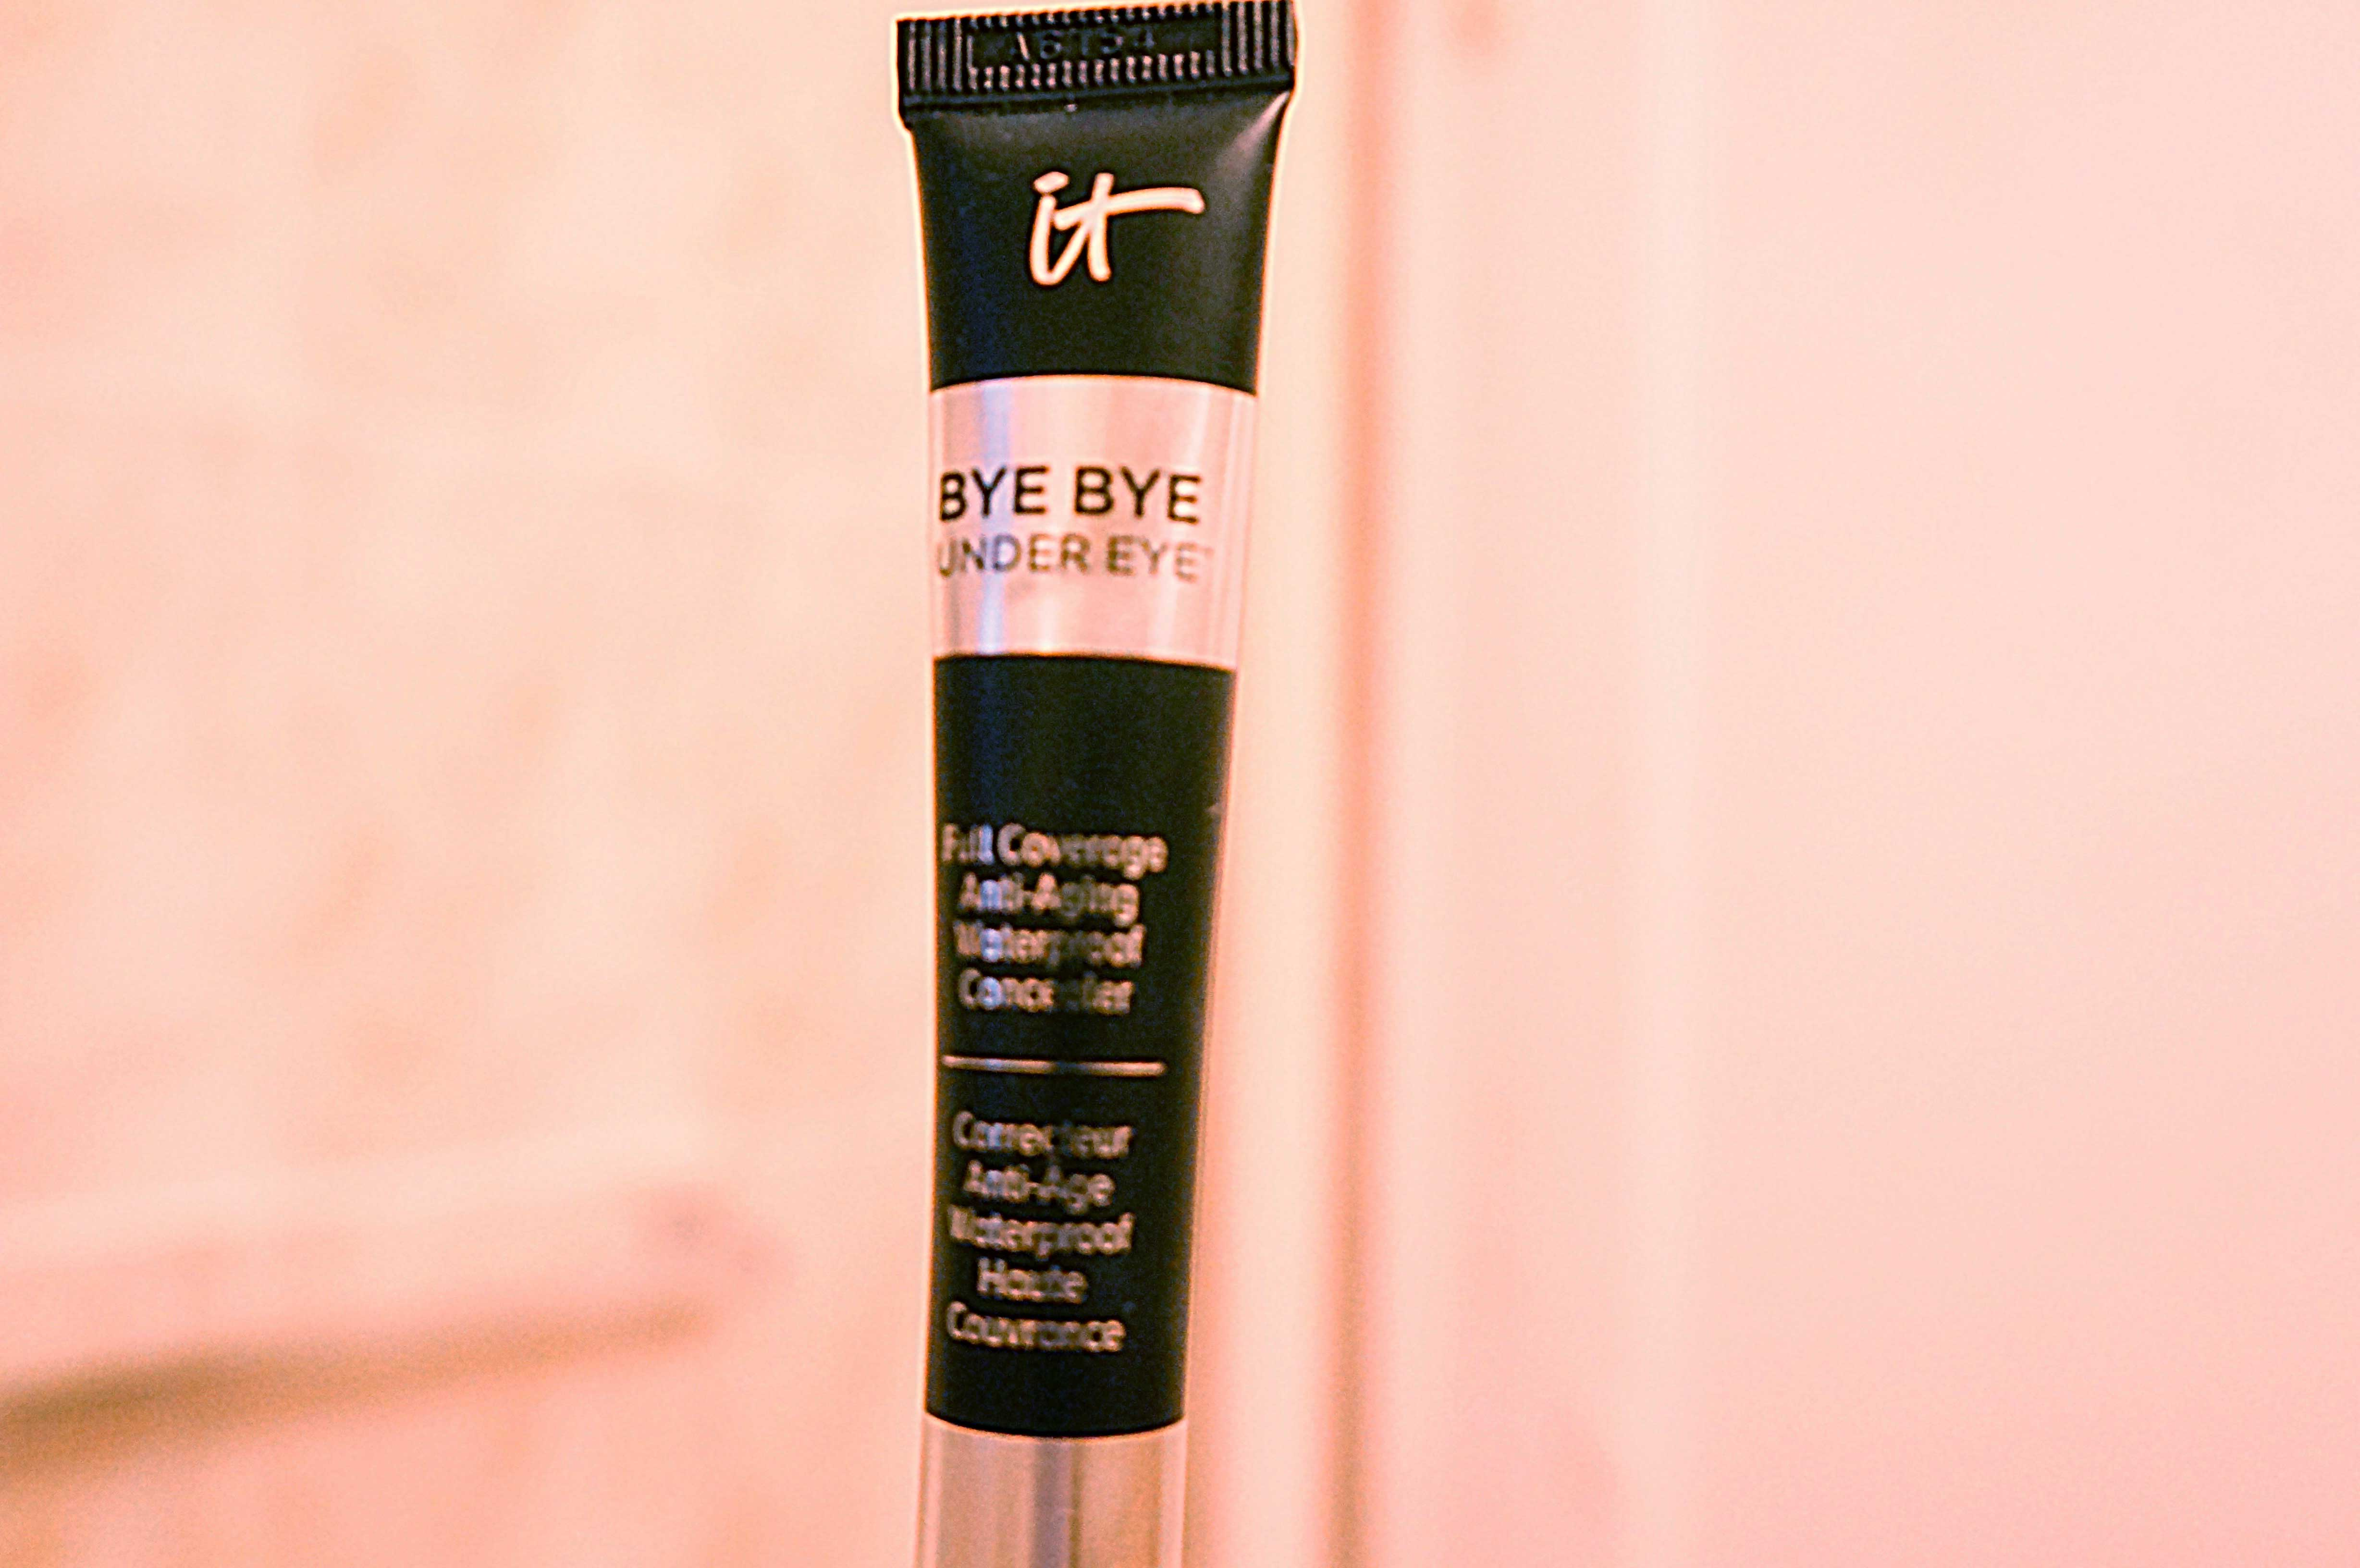 Bye Bye Undereye packaging